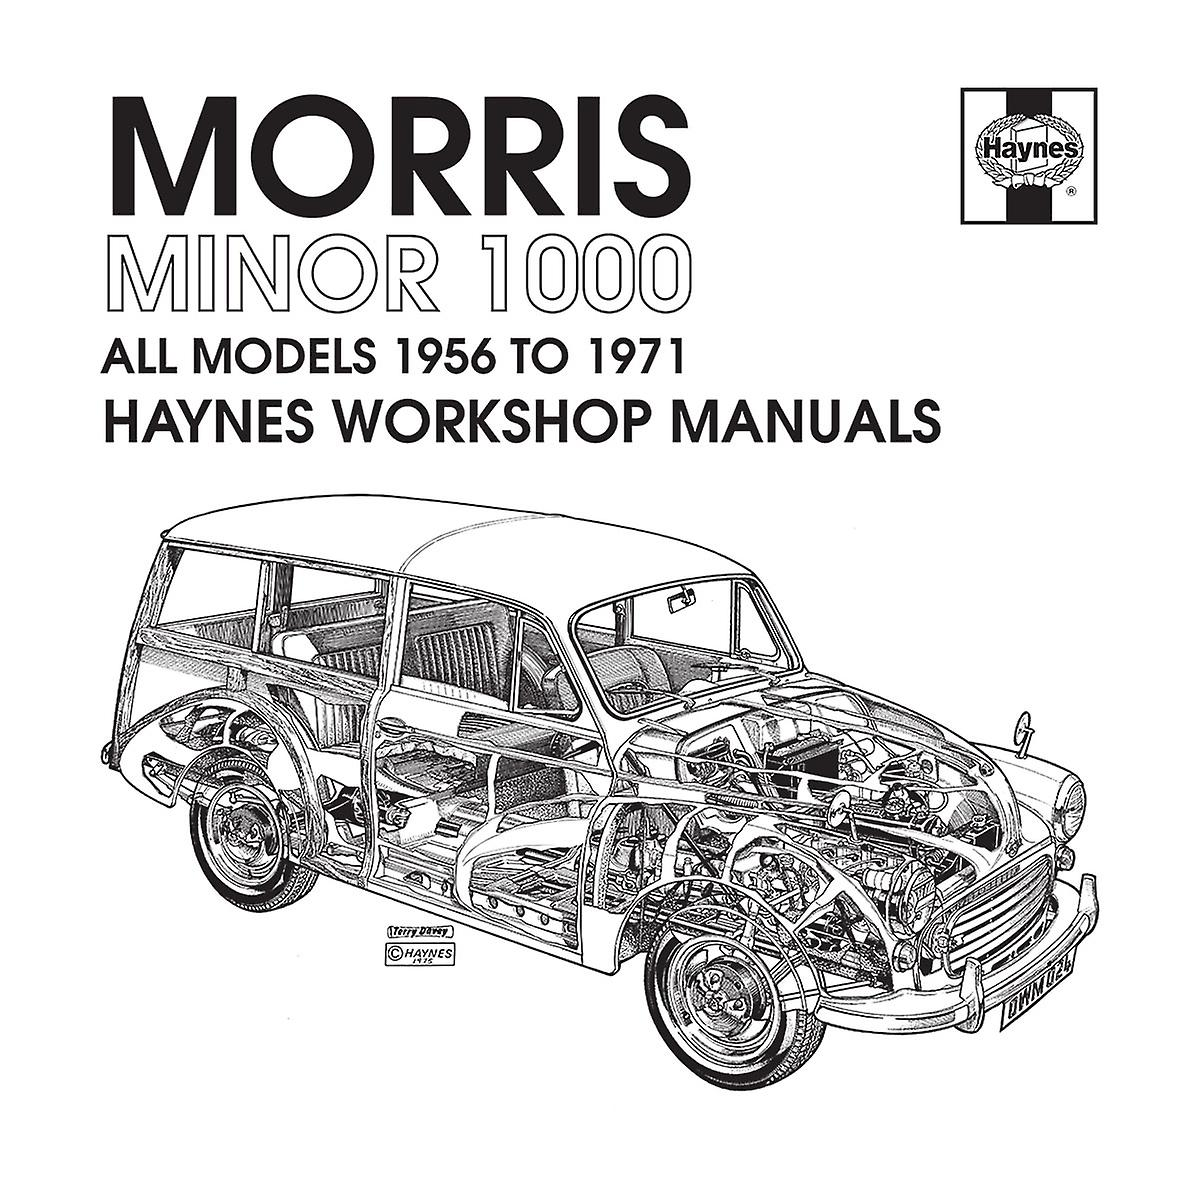 Haynes Workshop Manual 0024 Morris Minor 1000 Black Men's